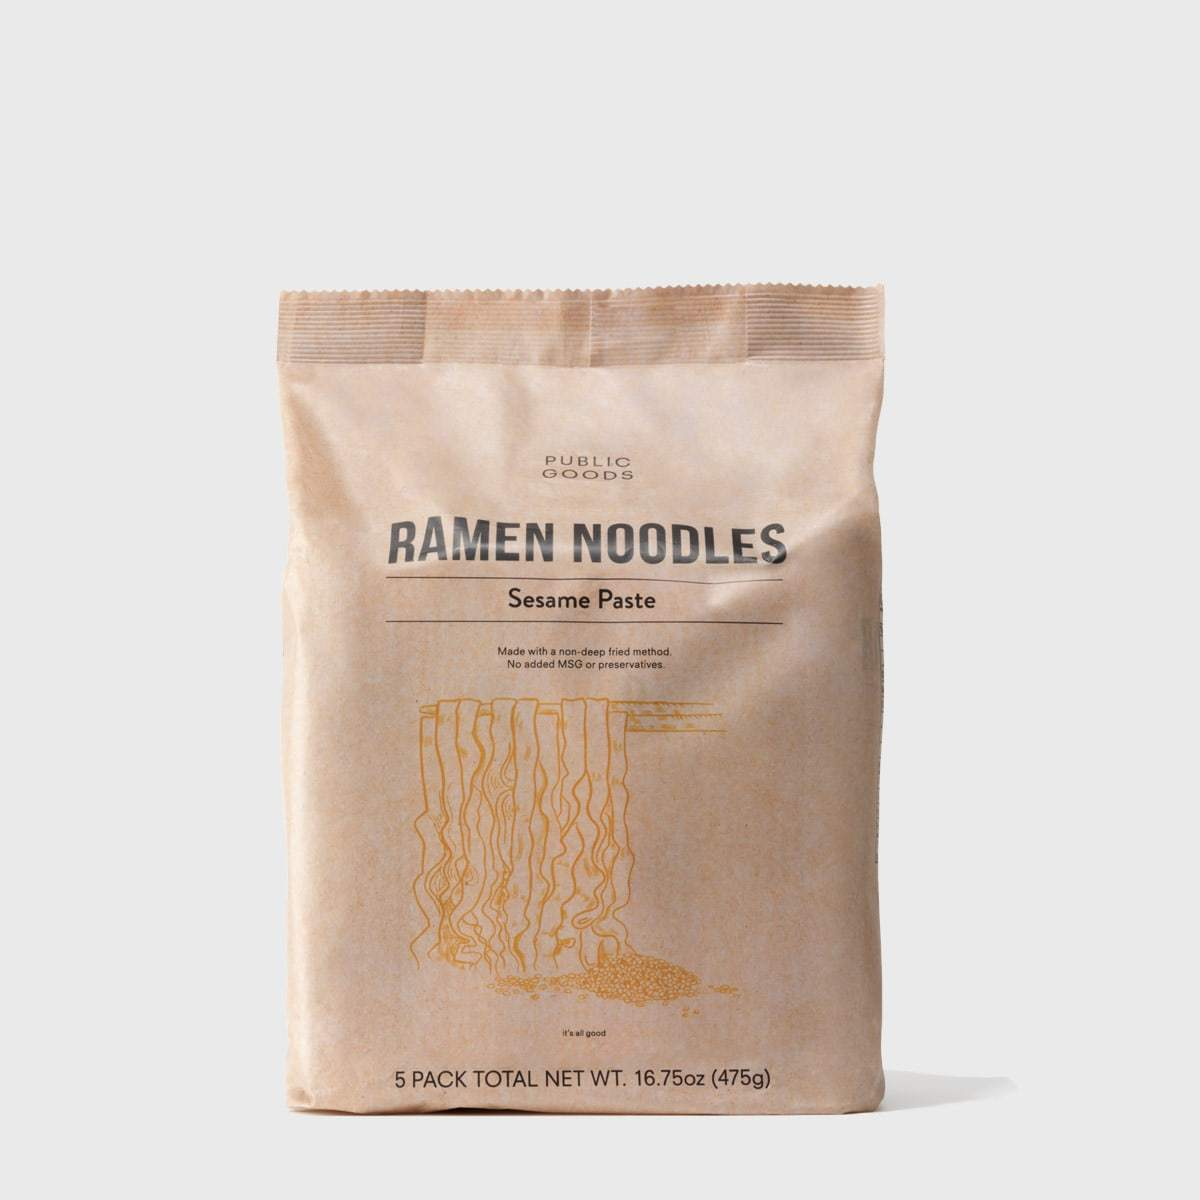 packaged sesame paste ramen noodles